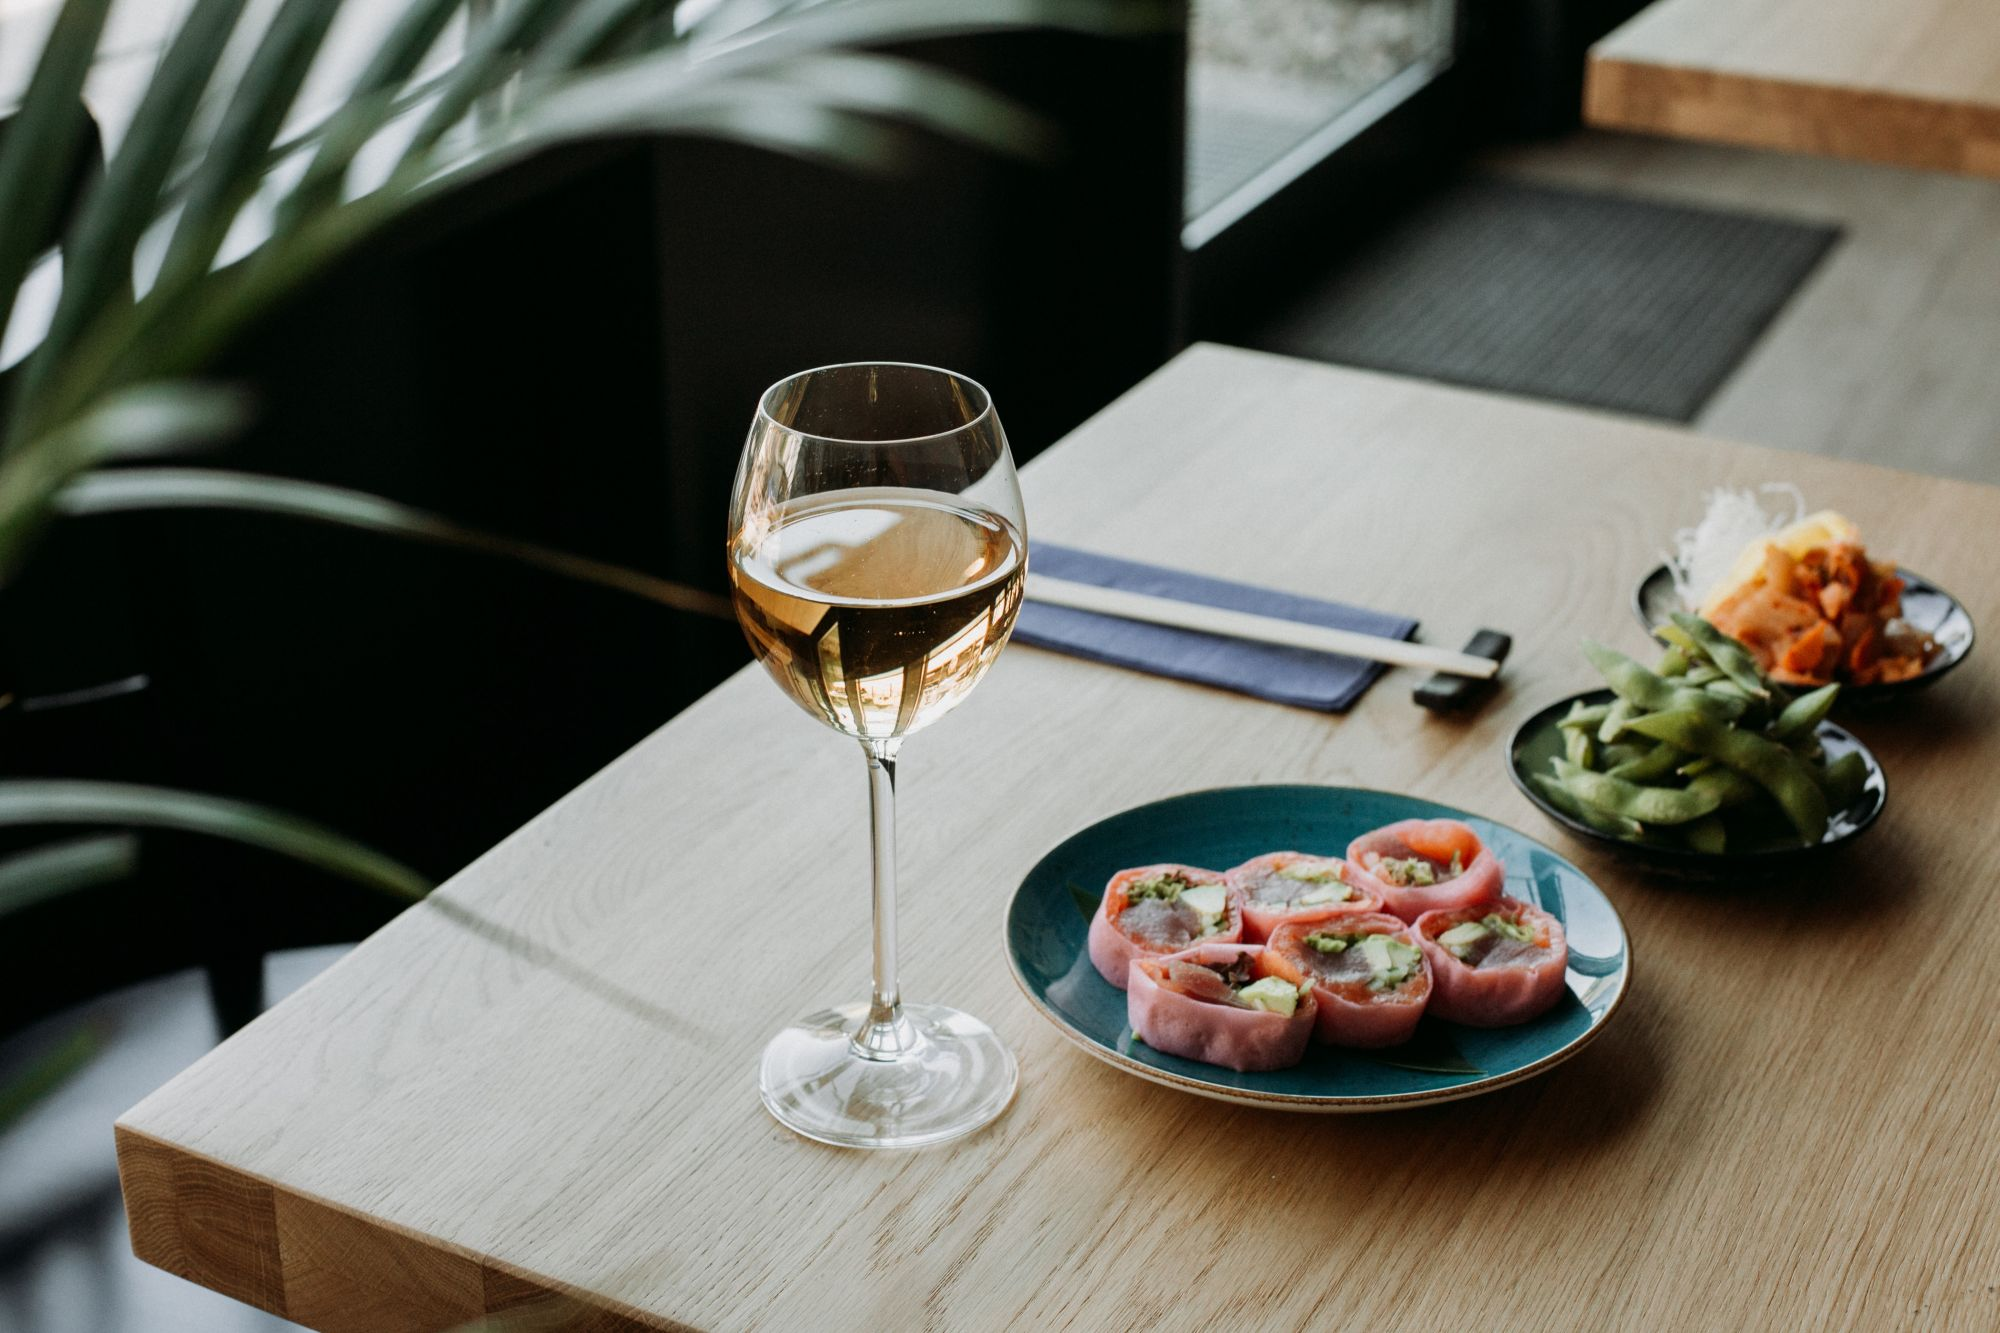 The Best Wines To Match With Asian Food